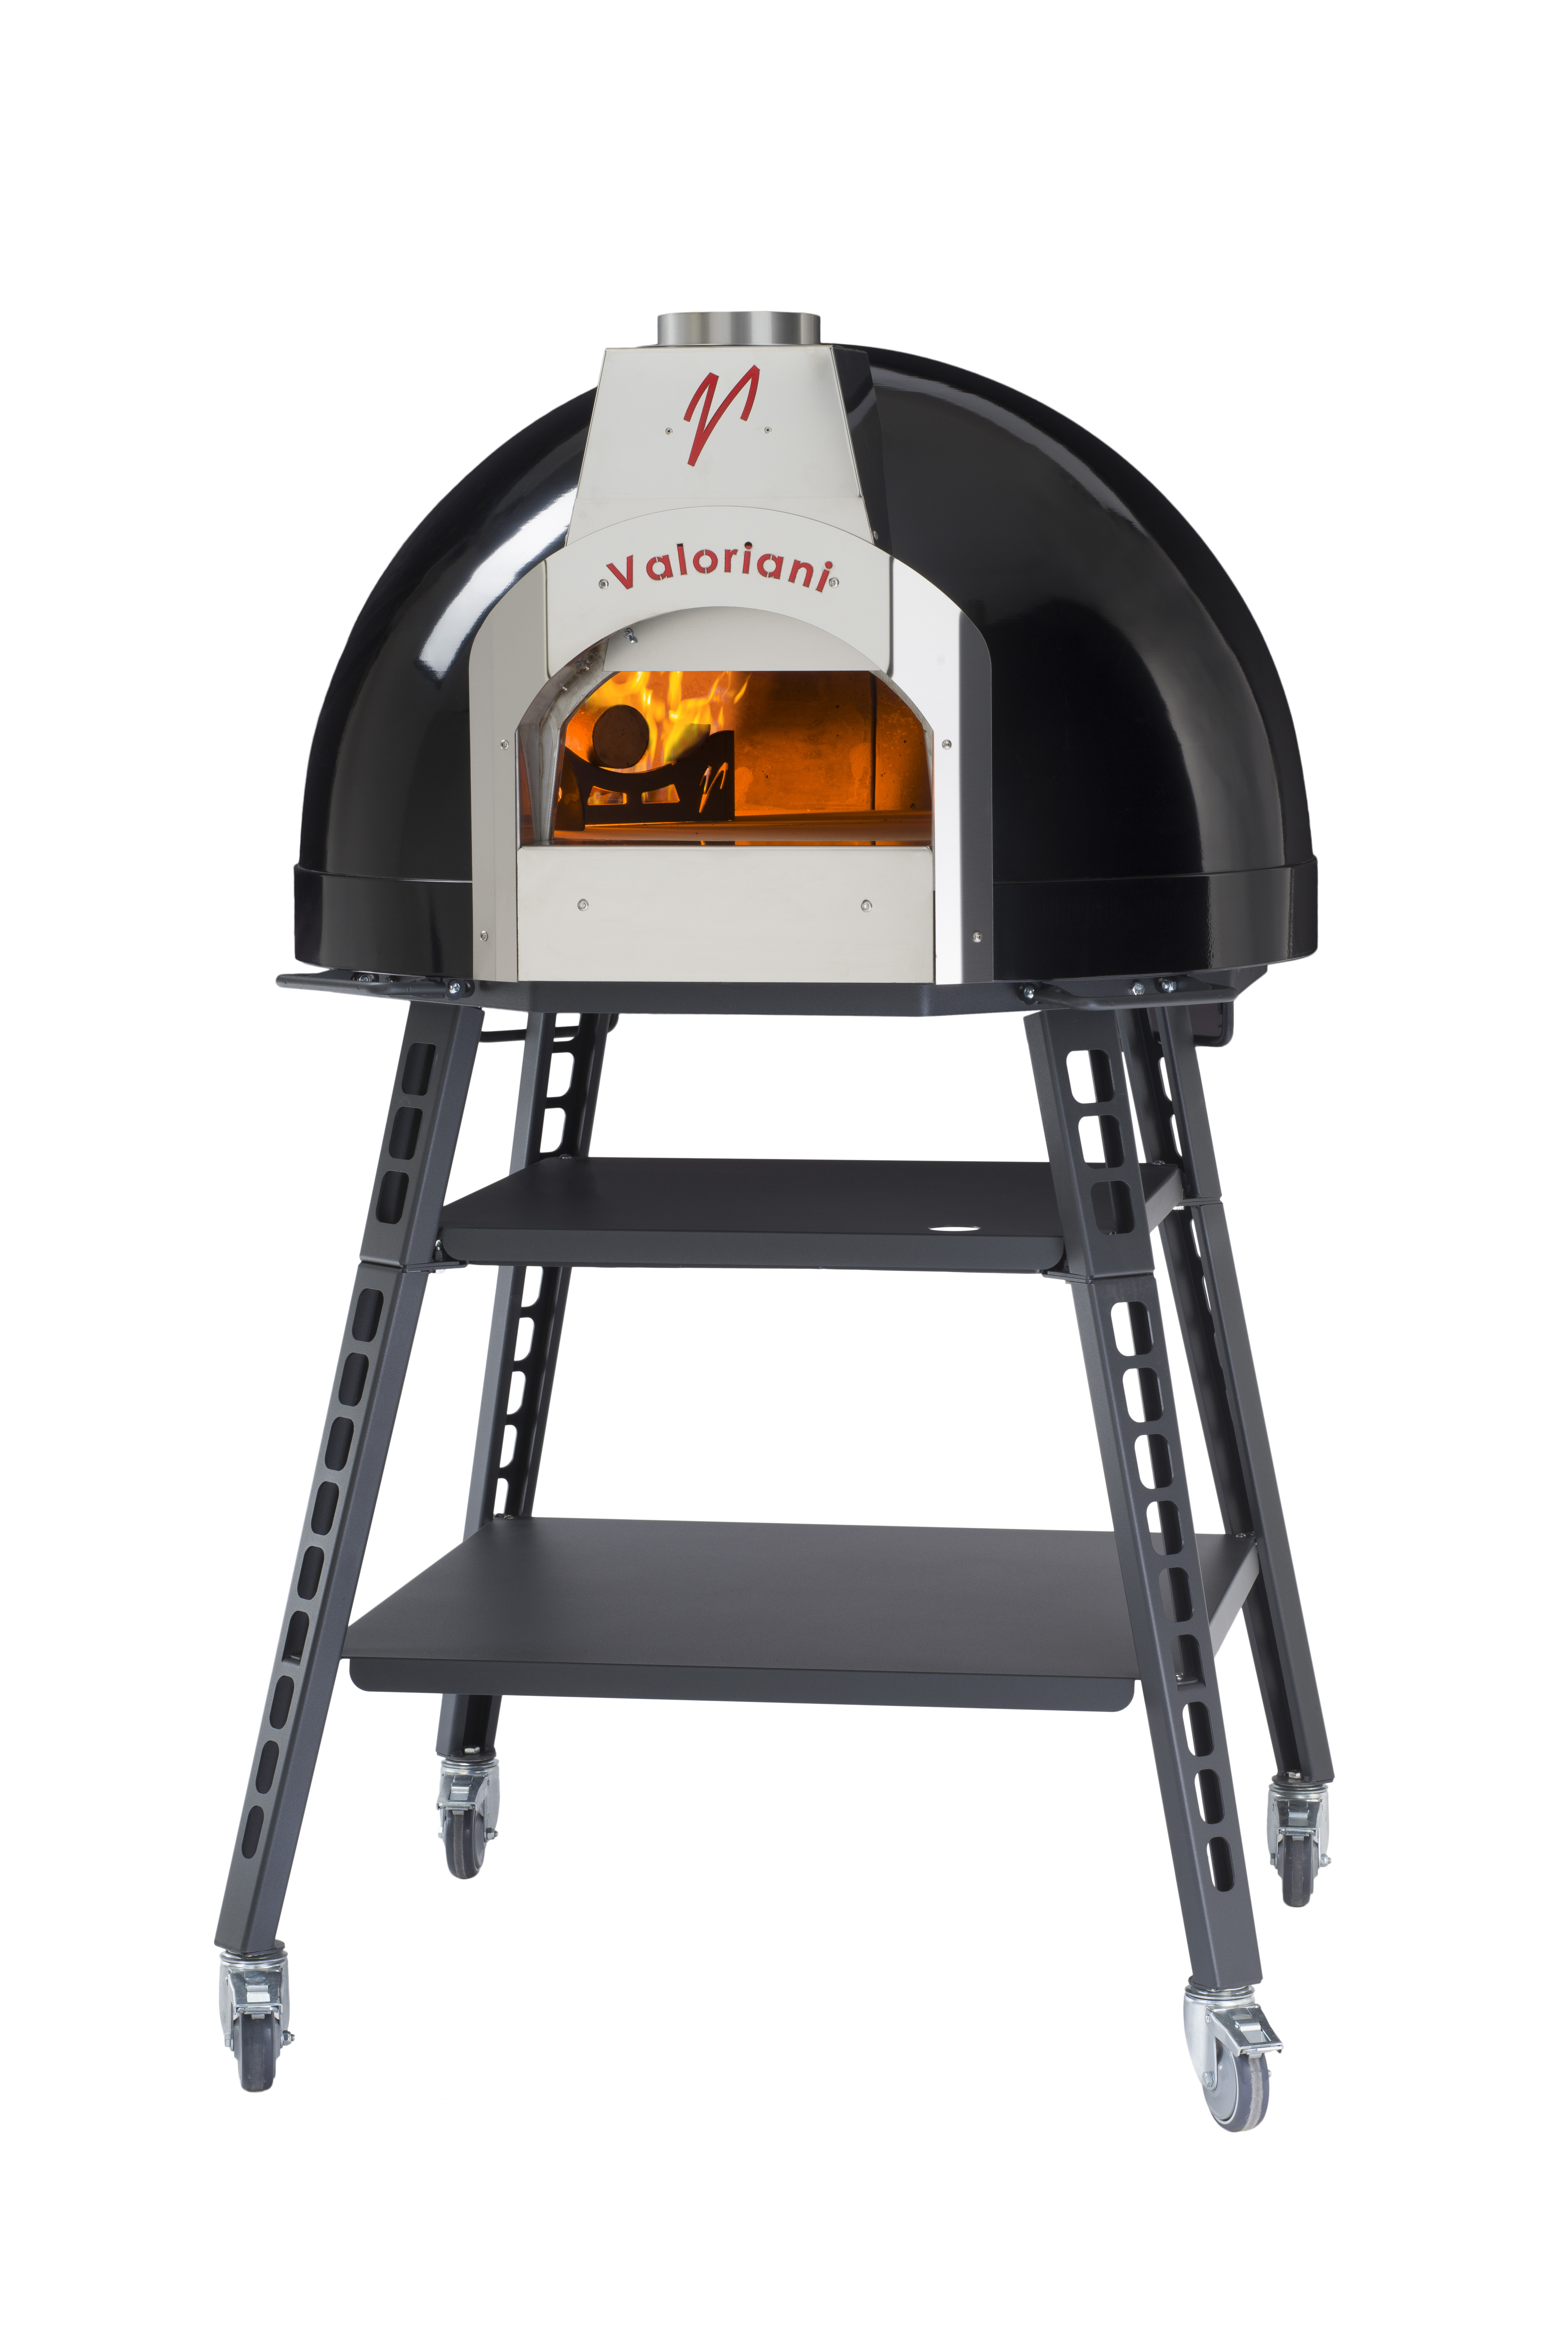 Valoriani Baby Wood Fired Oven Luxury Distributed In